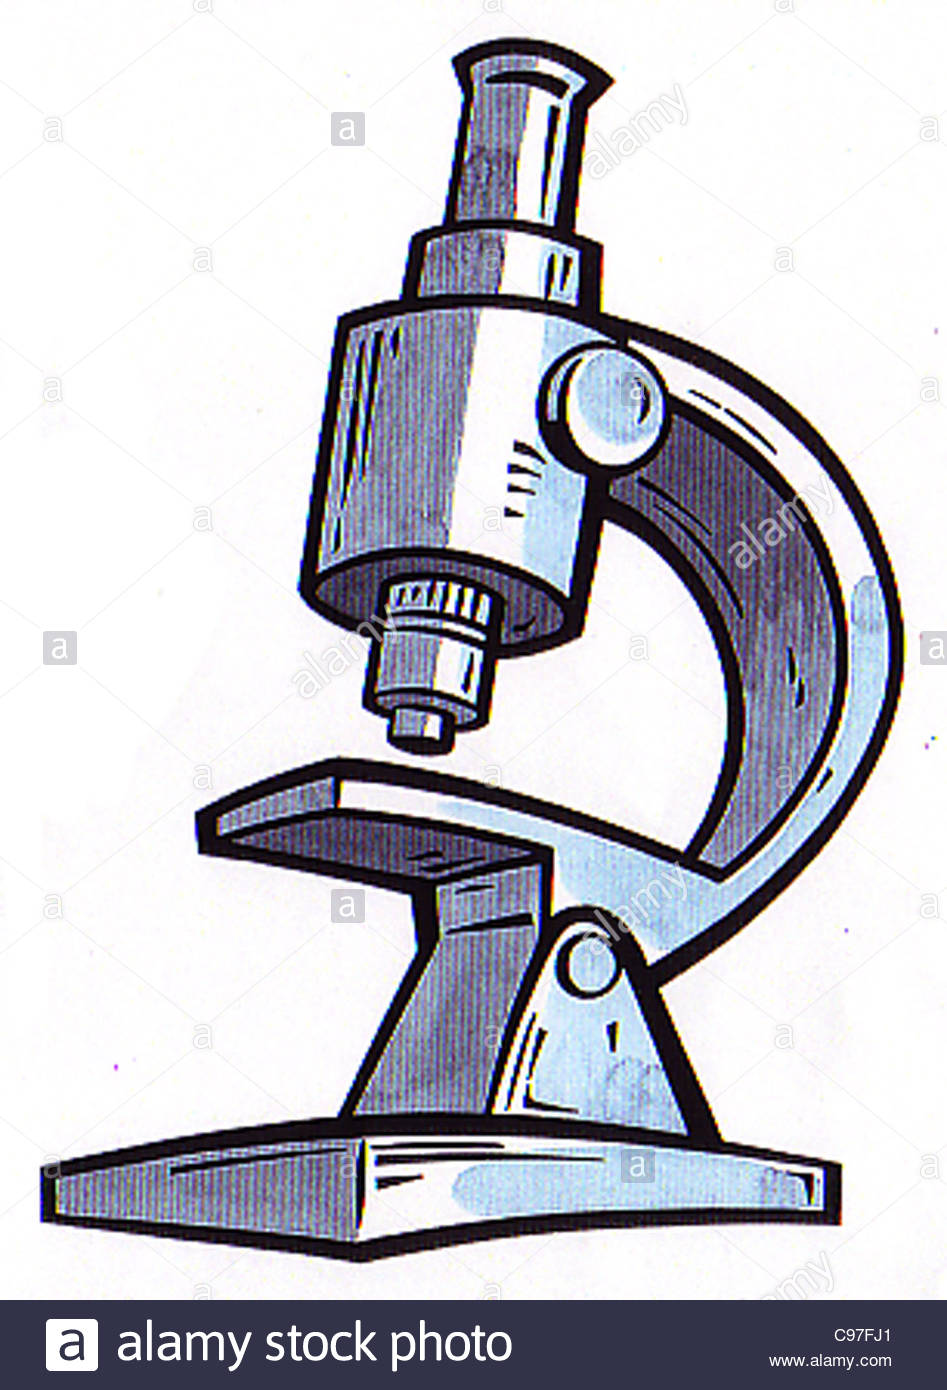 947x1390 Microscope Drawing Microscope Drawing Backgrounds